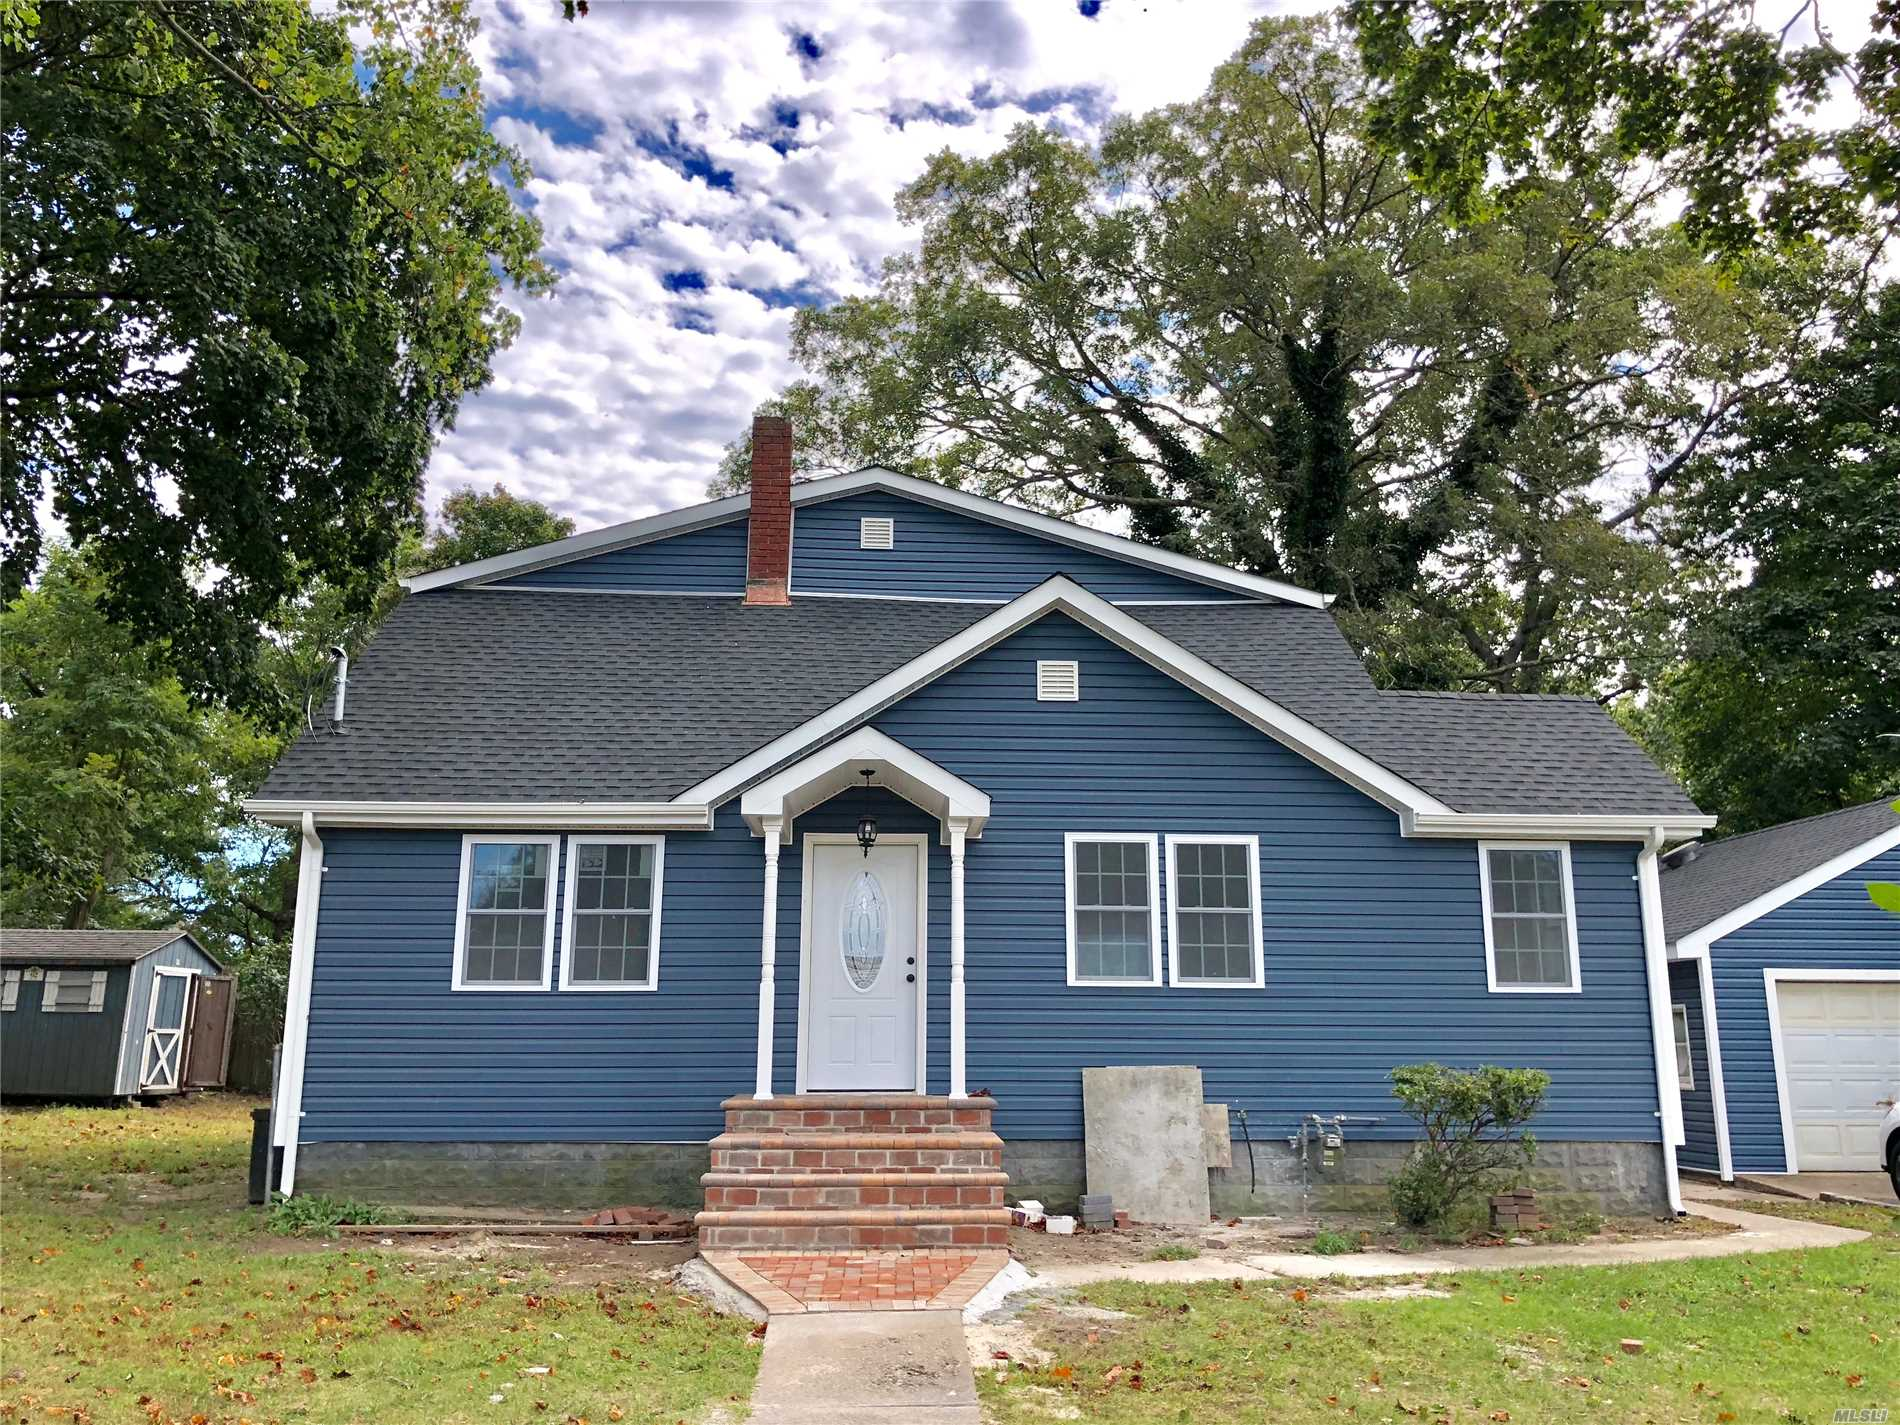 This Beautifully Renovated House Features A Brand New Kitchen, 6 Bedrooms, 3 Bathrooms, Living Room, Dining Room And A Full Basement.